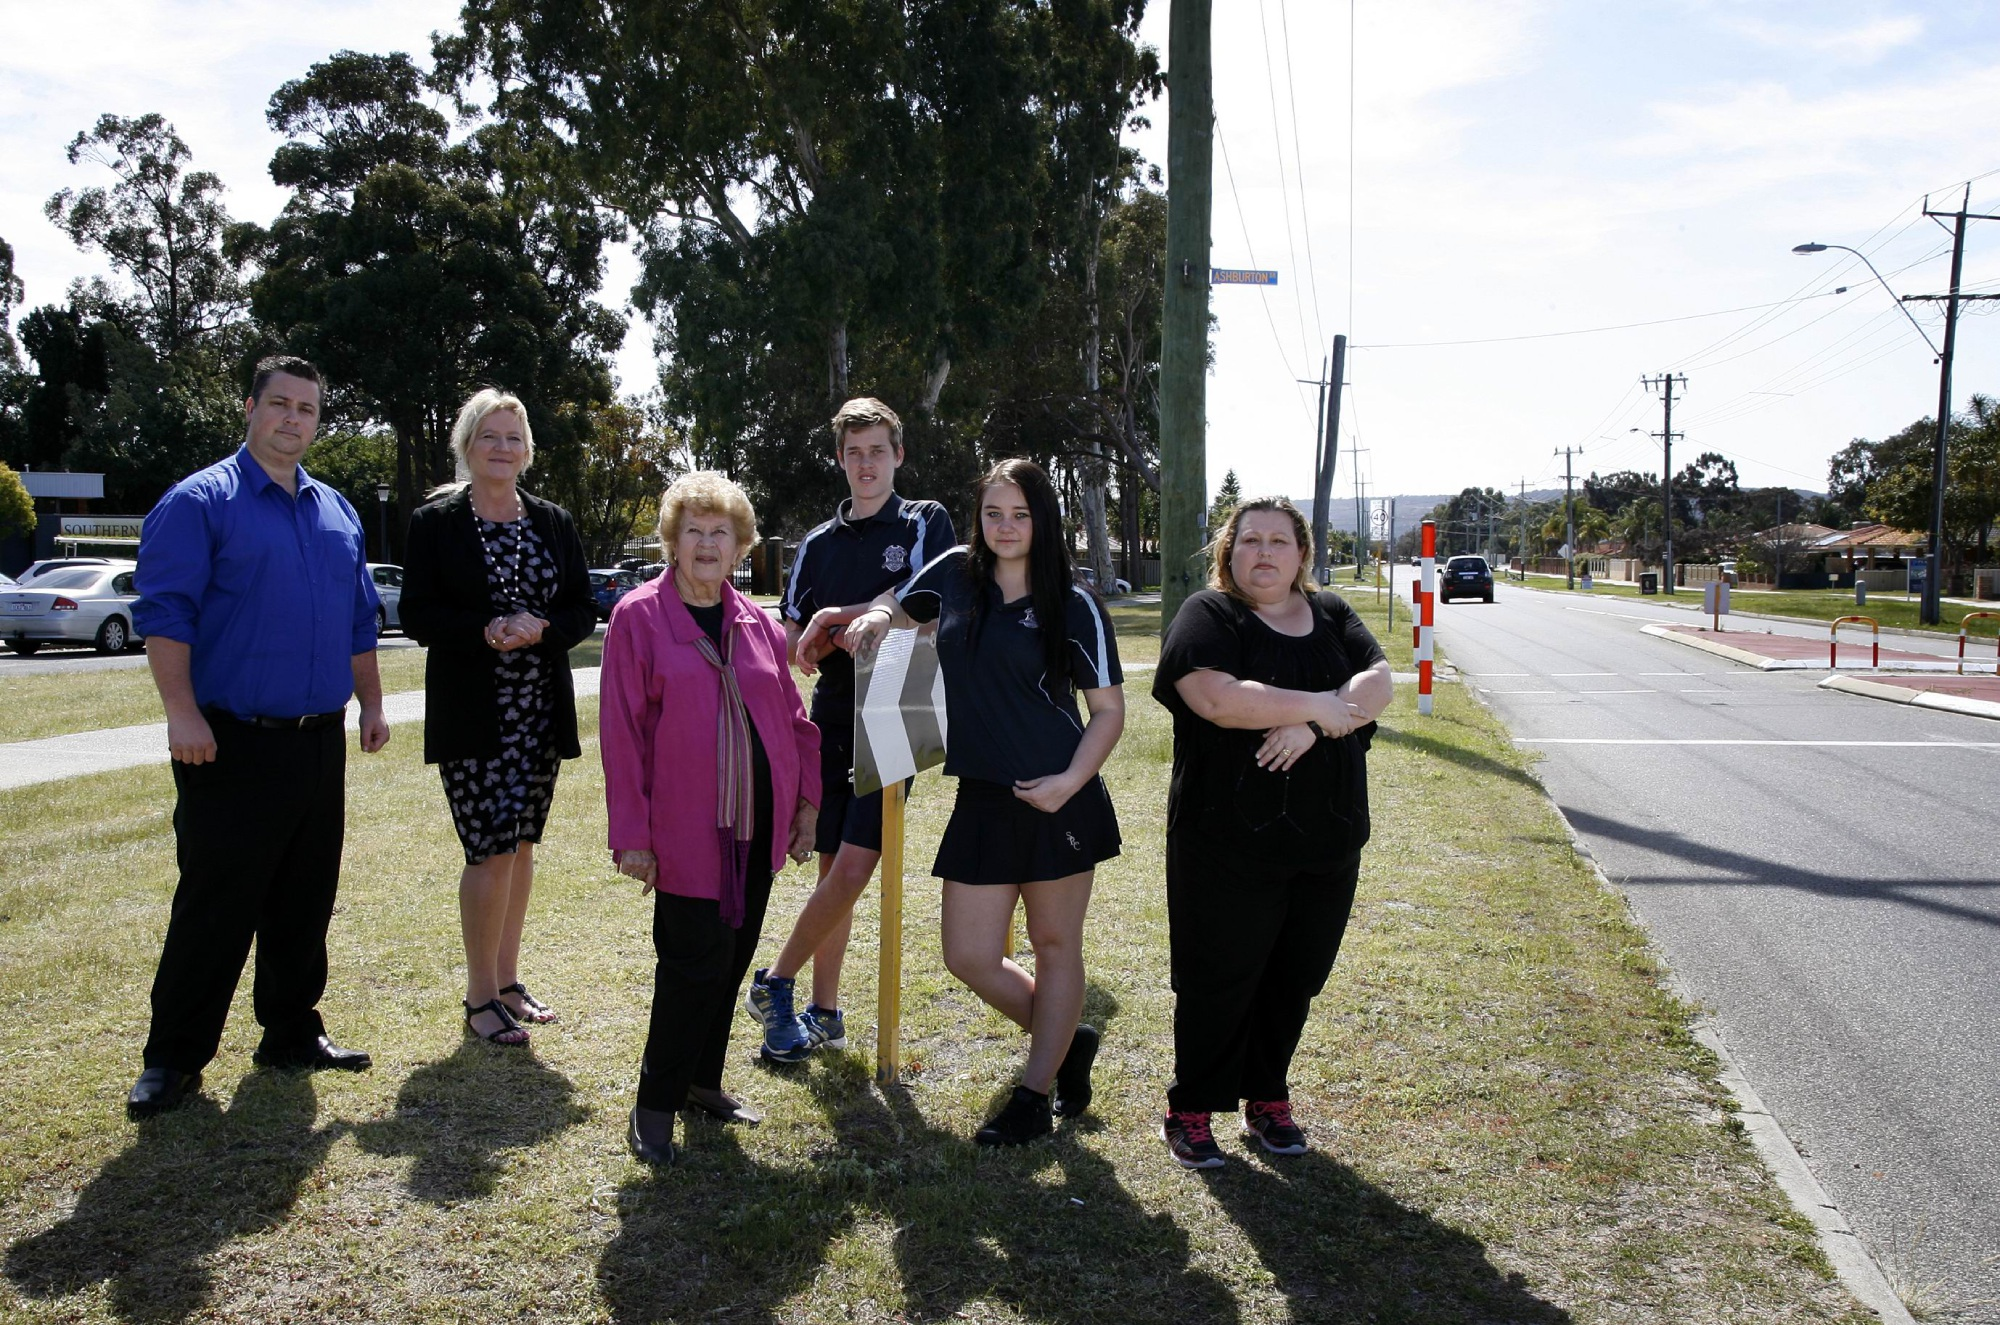 Southern River College: School traffic congestion issues must be tackled